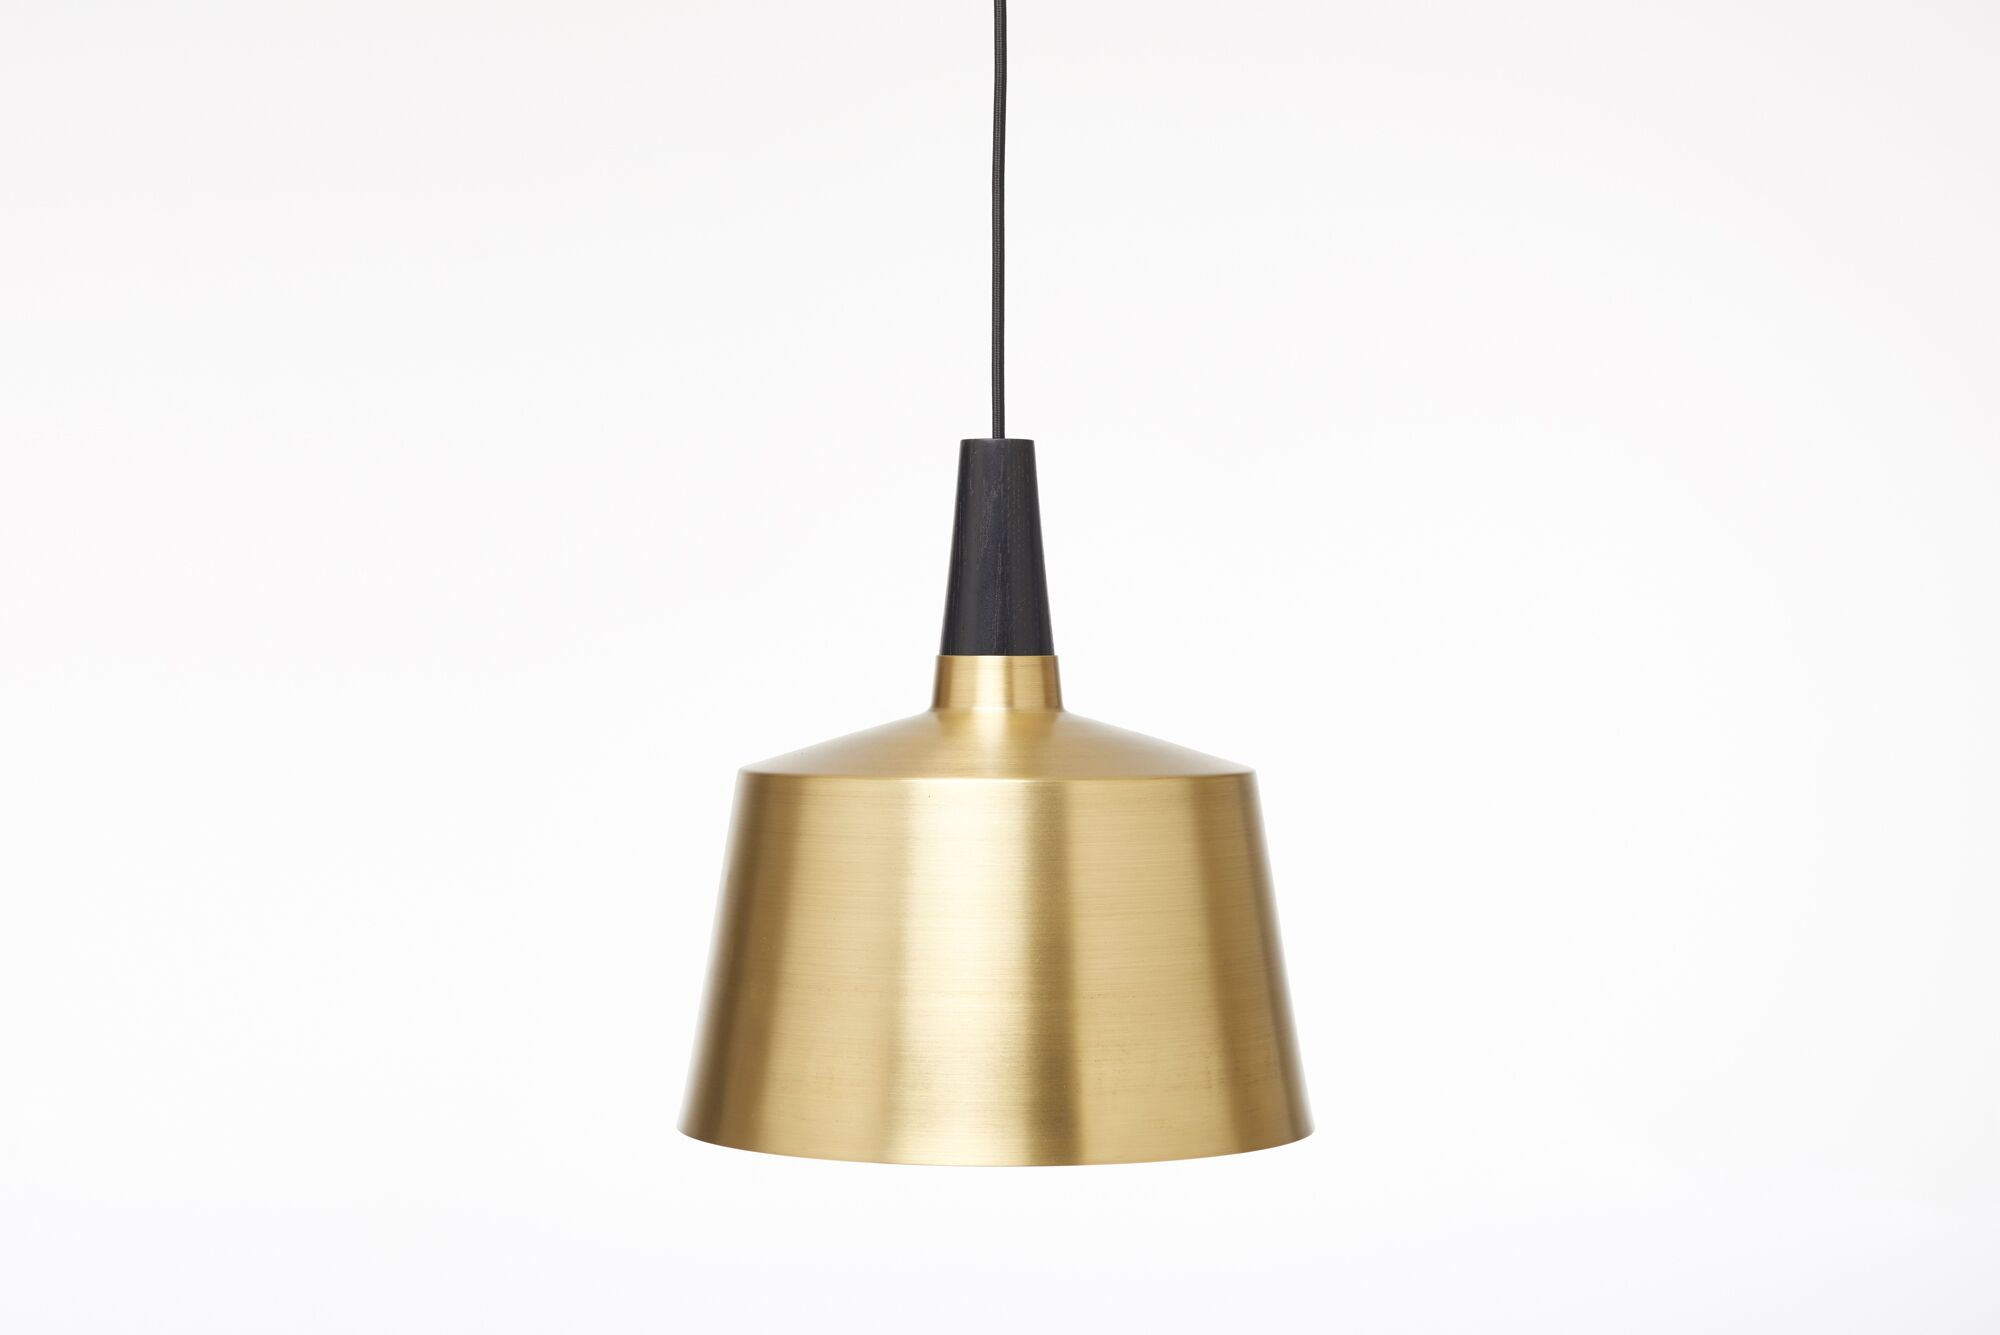 Gallery Of Morse Pendant By Apparentt Local Australian Furniture & Lighting Design Richmond, Melbourne Image 5